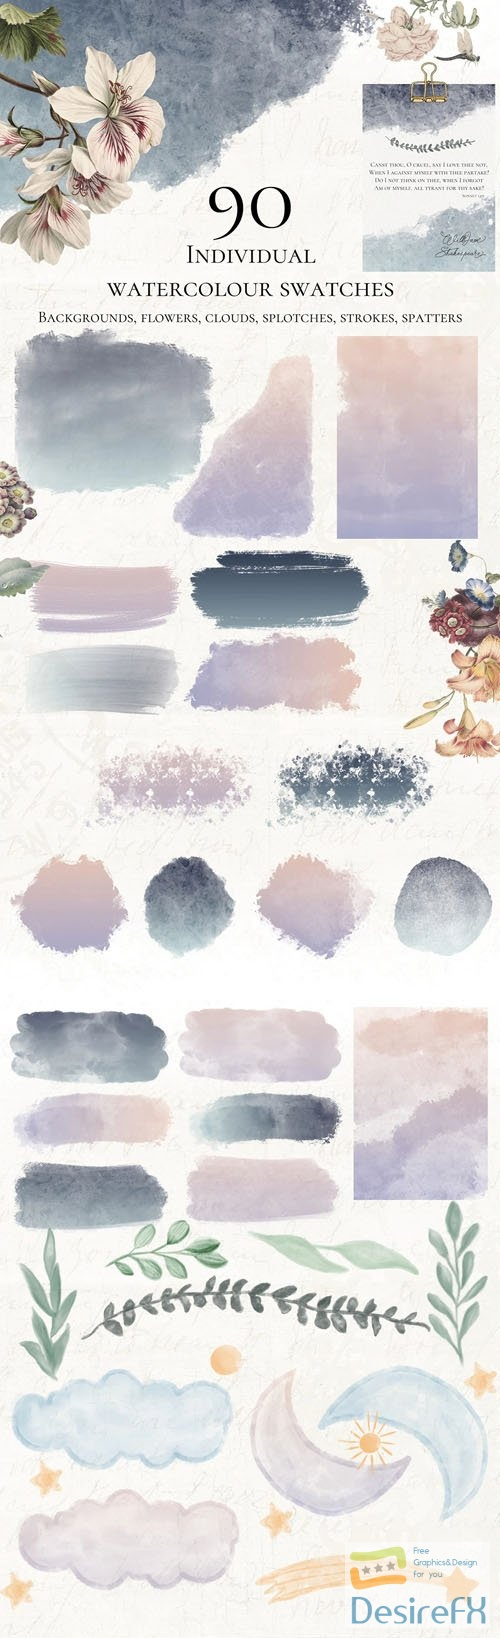 90 Watercolor Swatches Pack - Hi-Res Watercolor Paint Wash